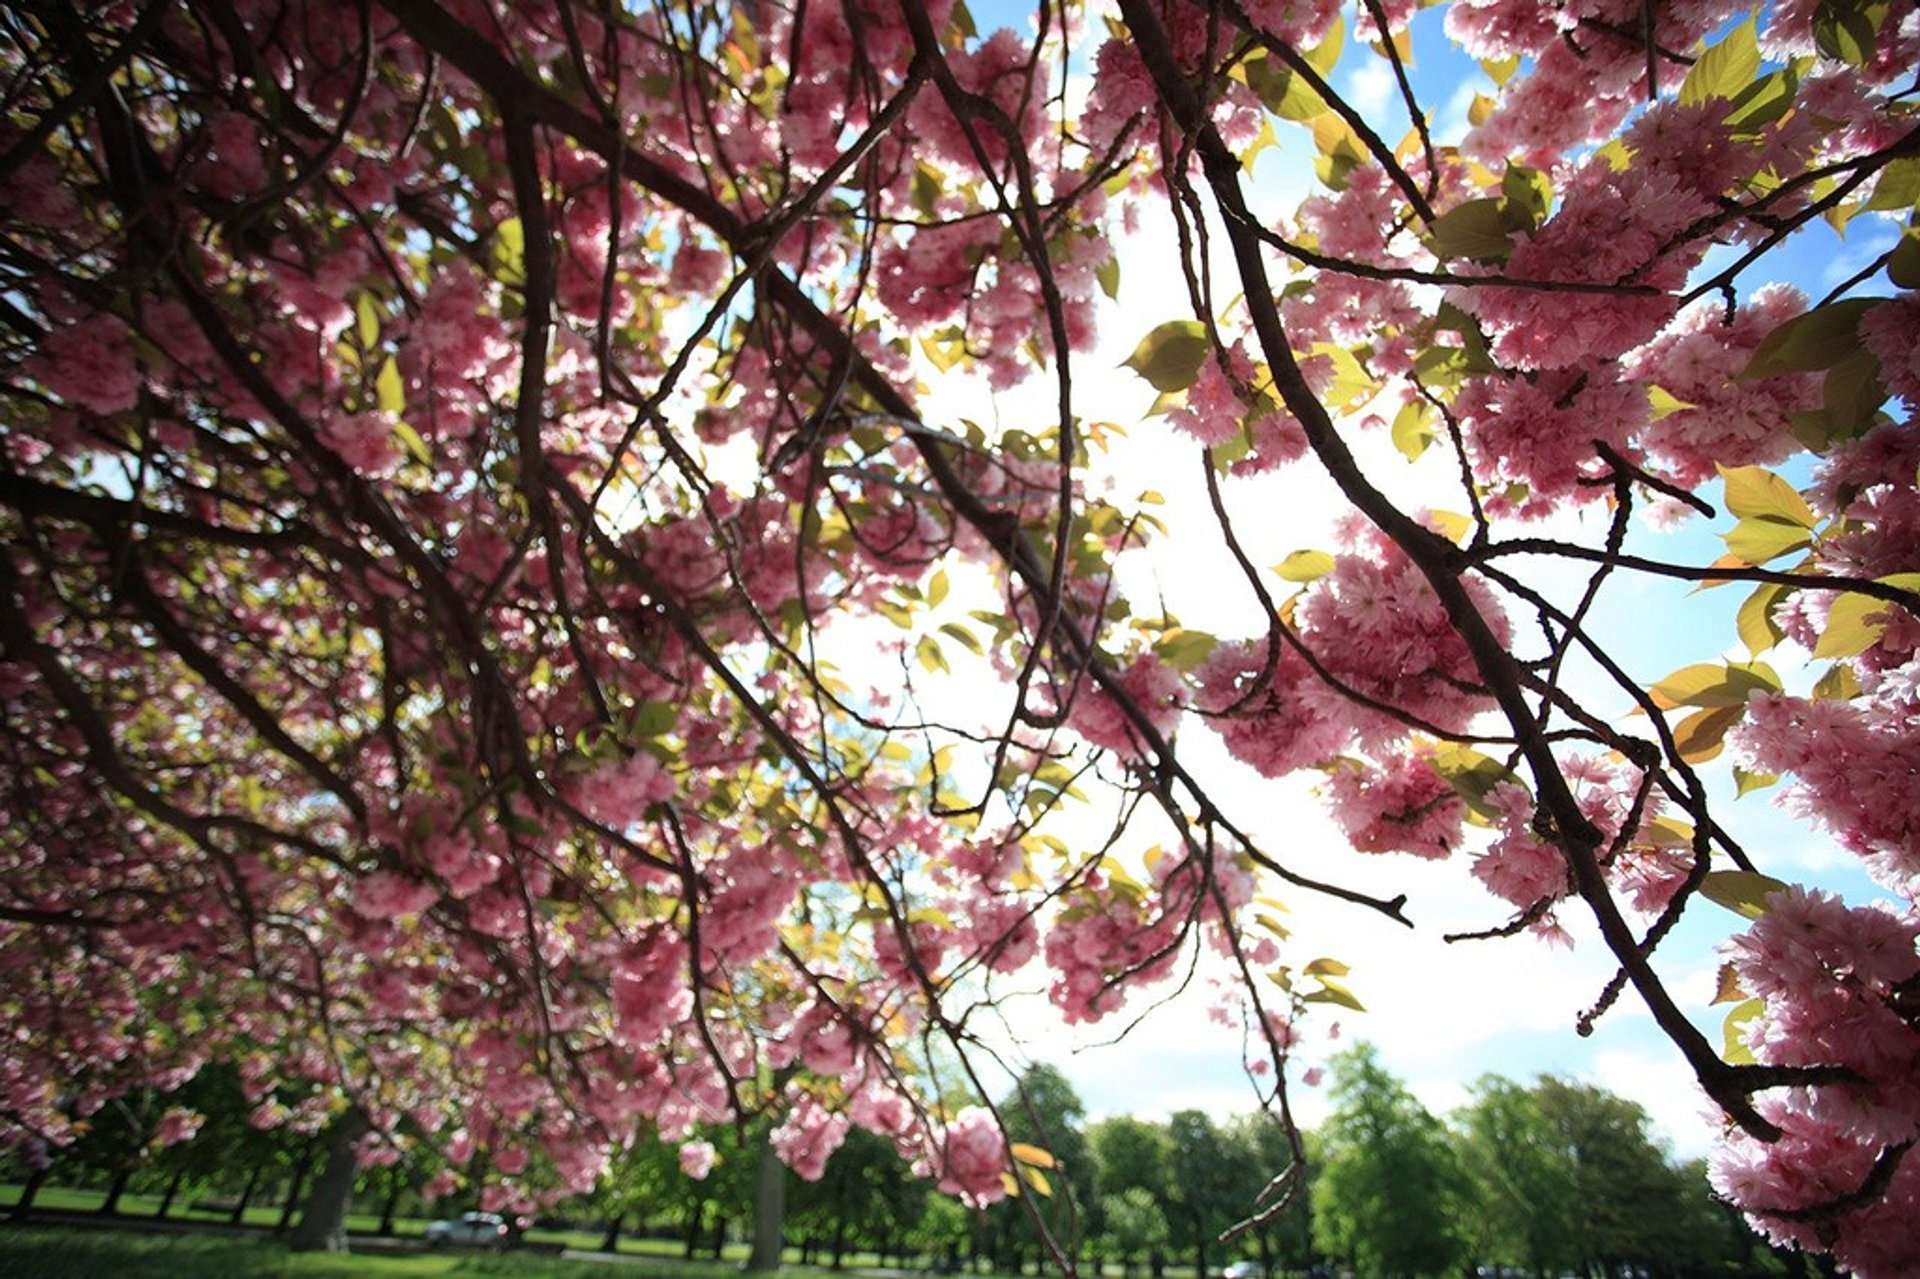 Cherry blossoms a Greenwich Park 2020